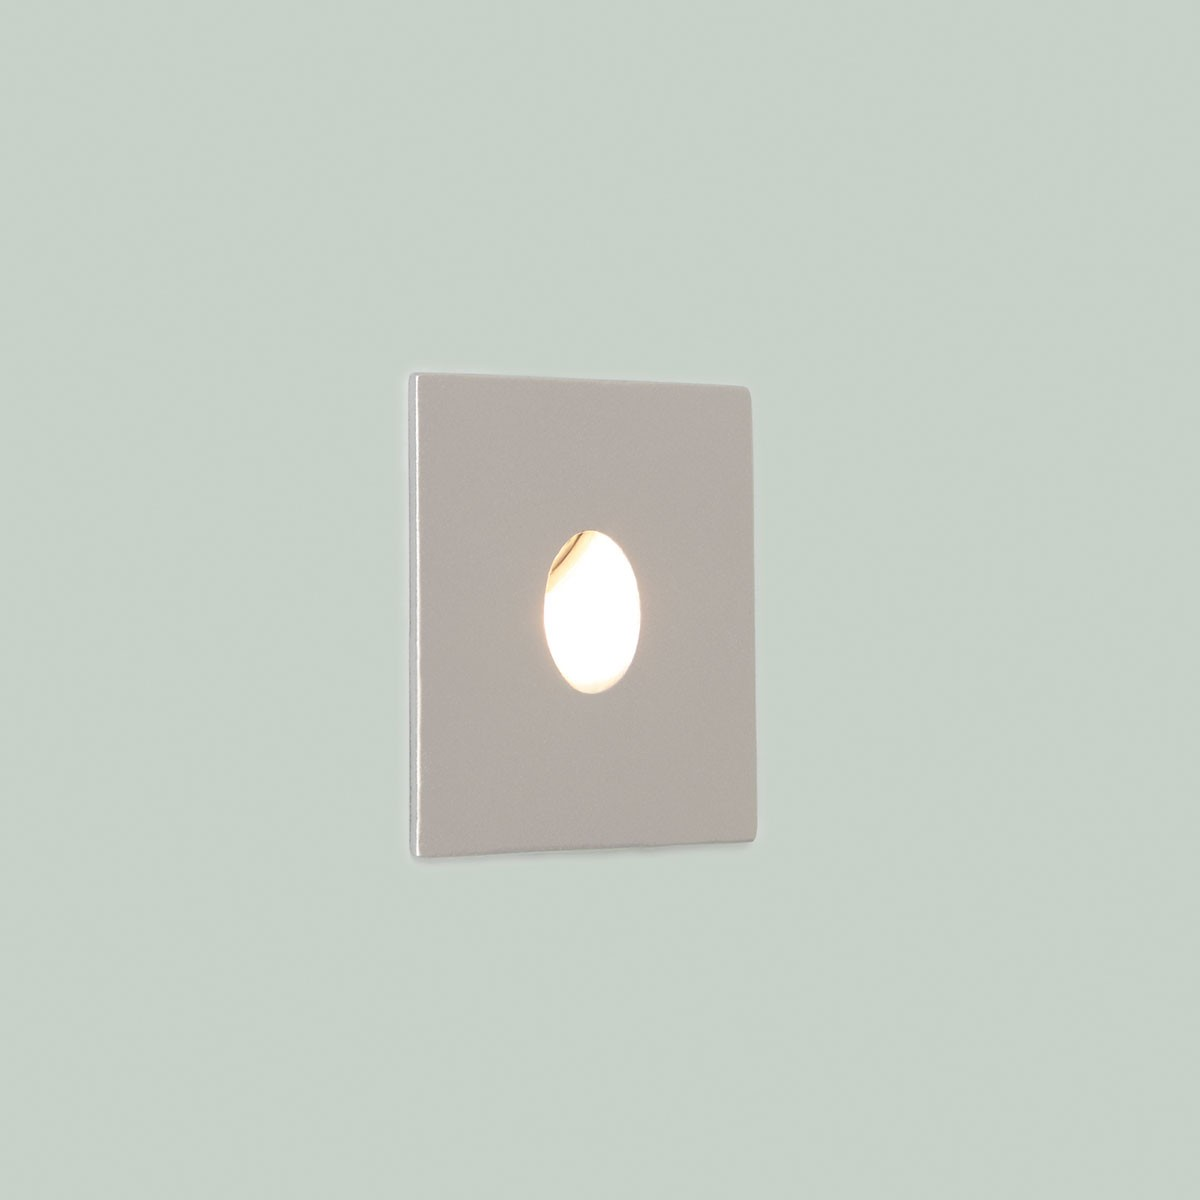 Silver Crystal Wall Lights : Astro Tango LED Painted Silver Bathroom Wall Light - 3000K at UK Electrical Supplies.